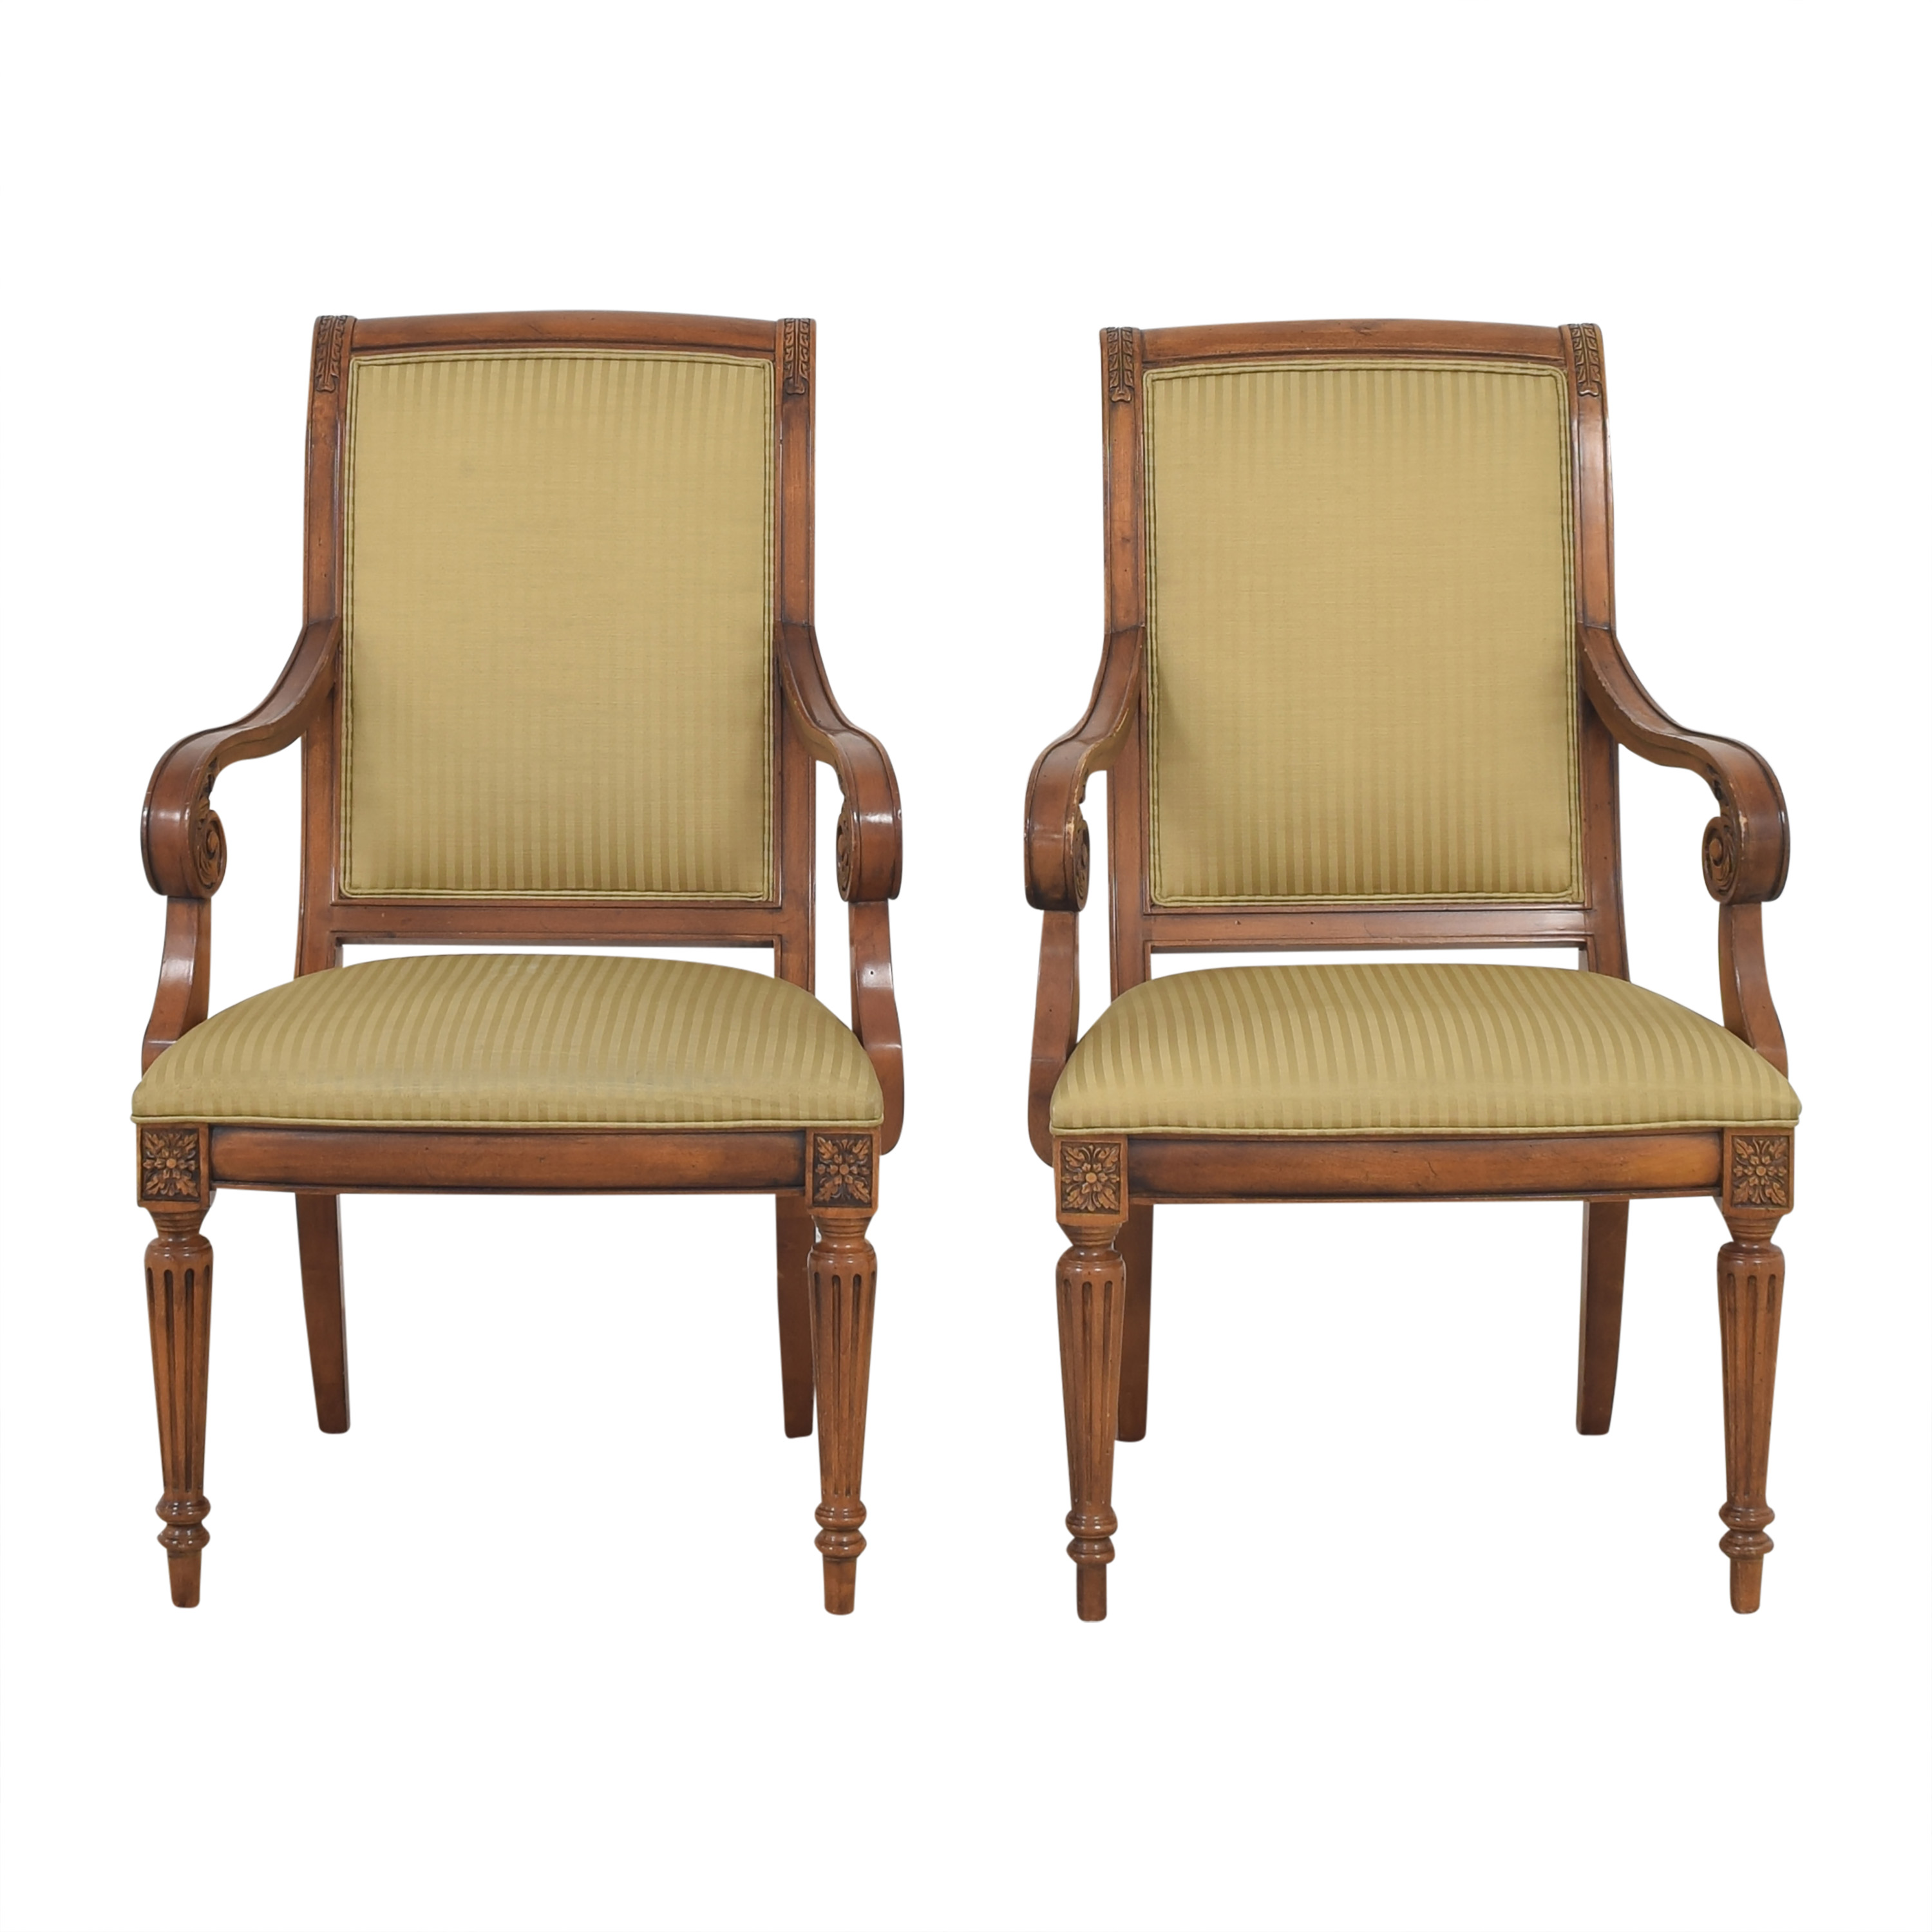 Ethan Allen Adison Dining Arm Chairs / Dining Chairs